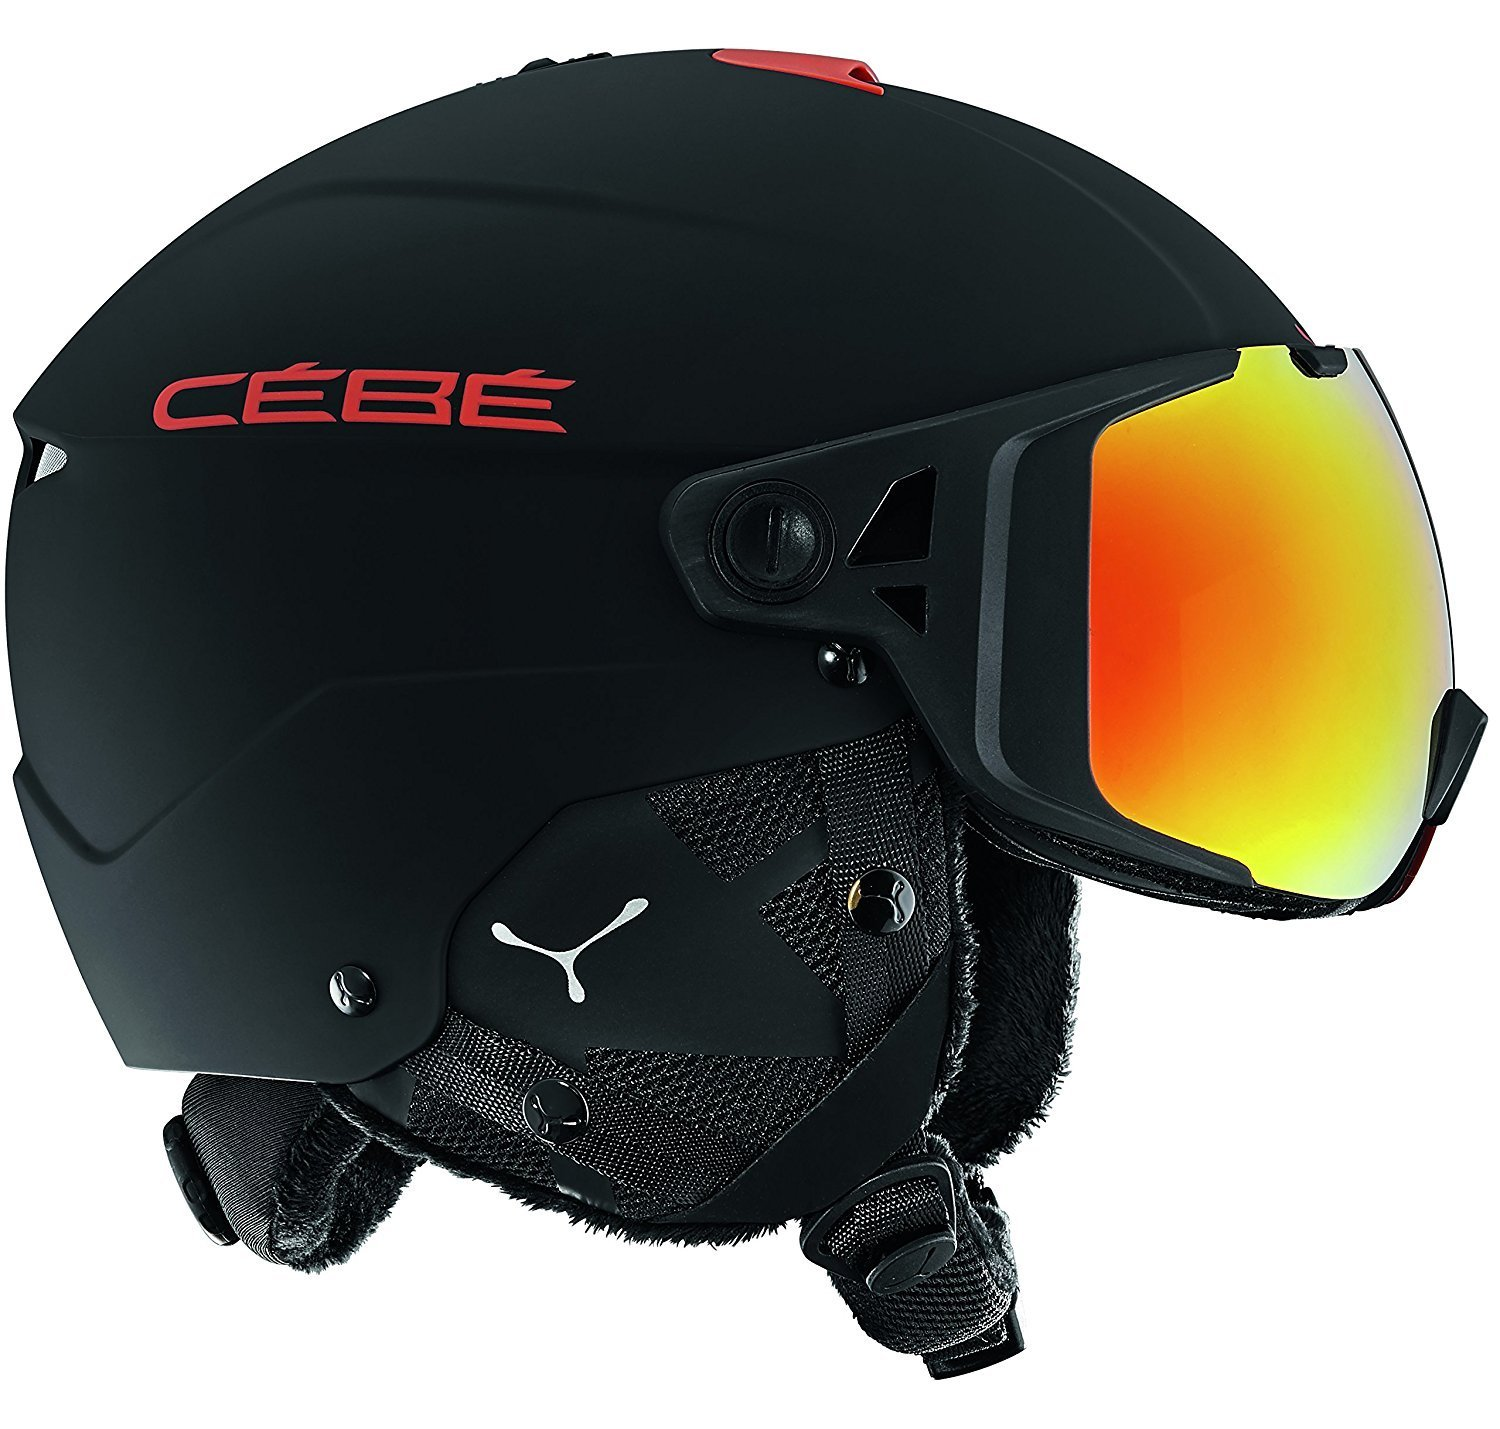 Шлем CEBE ELEMENT VISOR Matt Black Red (17/18) Red Flash Mirror